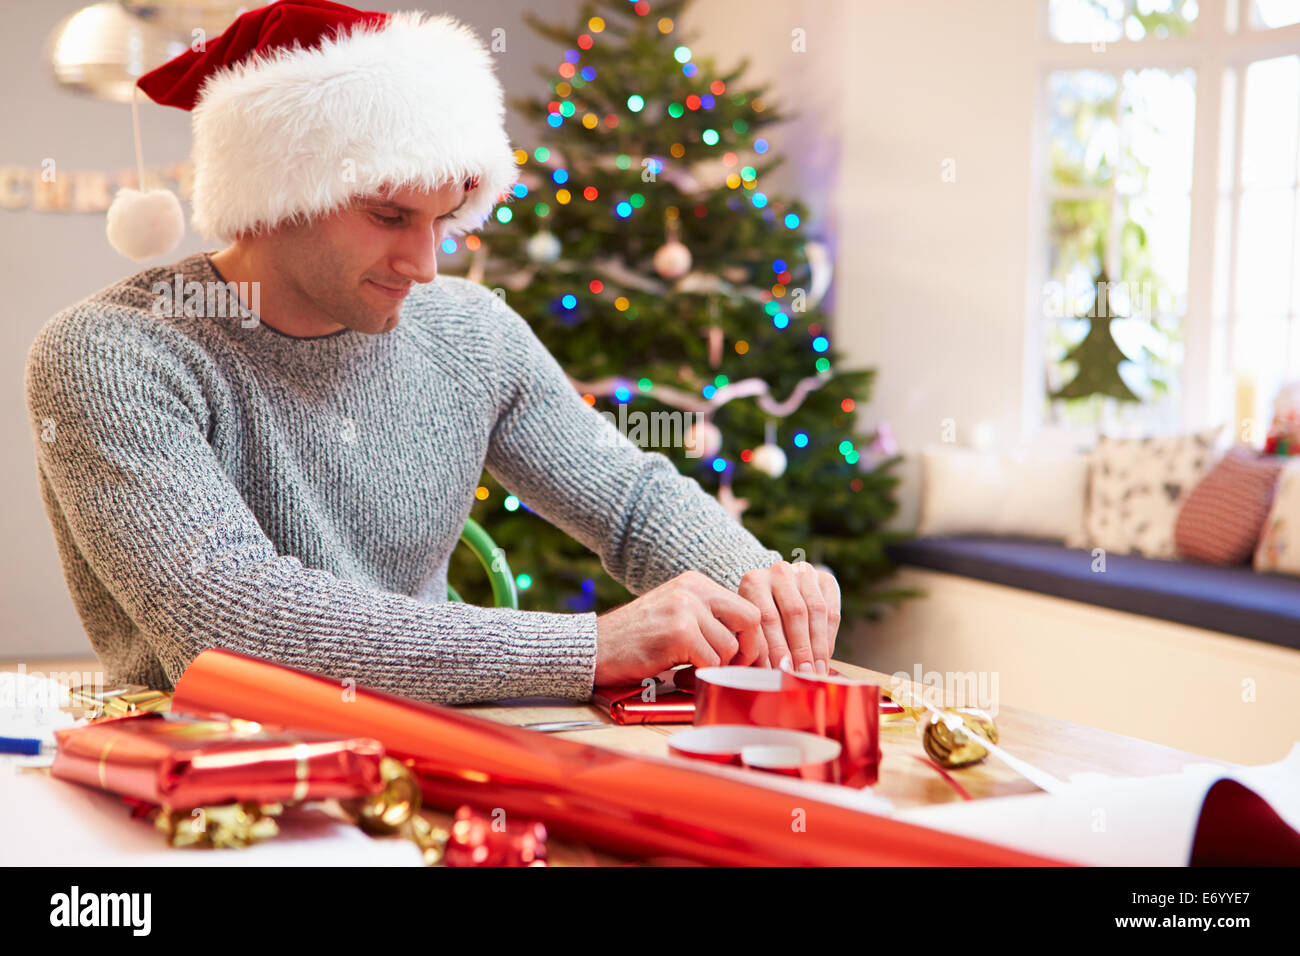 Man Wrapping Christmas Gifts At Home Stock Photo: 73143679 - Alamy